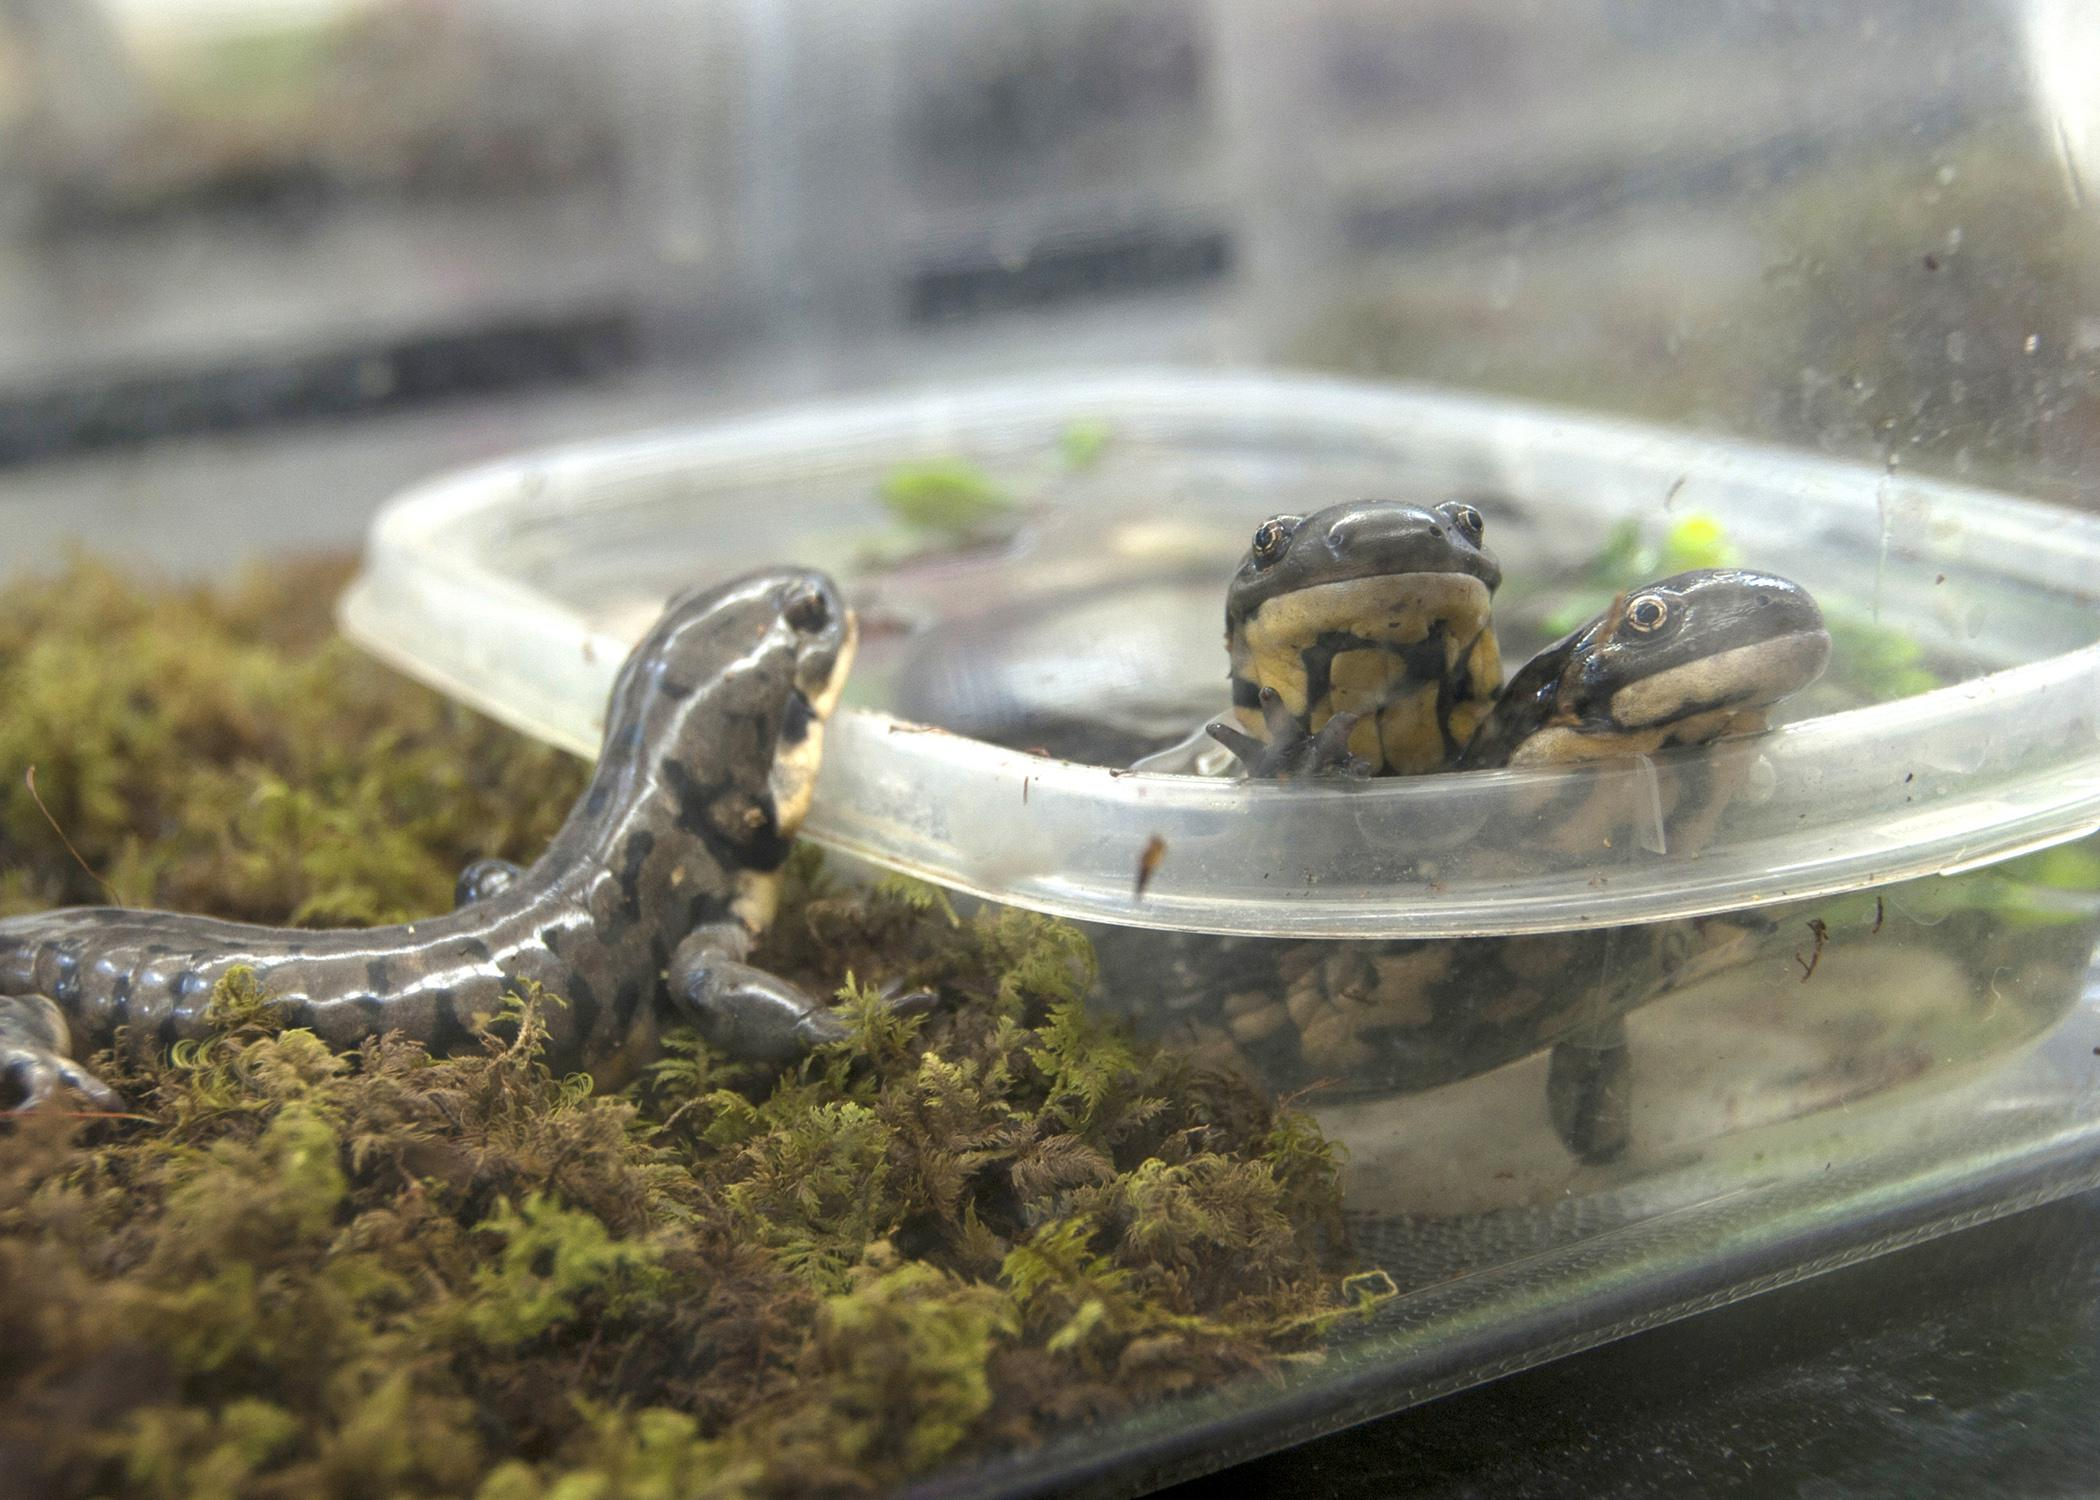 About 50 percent of salamander species worldwide are threatened. Researchers at Mississippi State University are working with these and other threatened salamanders to help them breed in captivity. (Photo by MSU Ag Communications/Kat Lawrence)